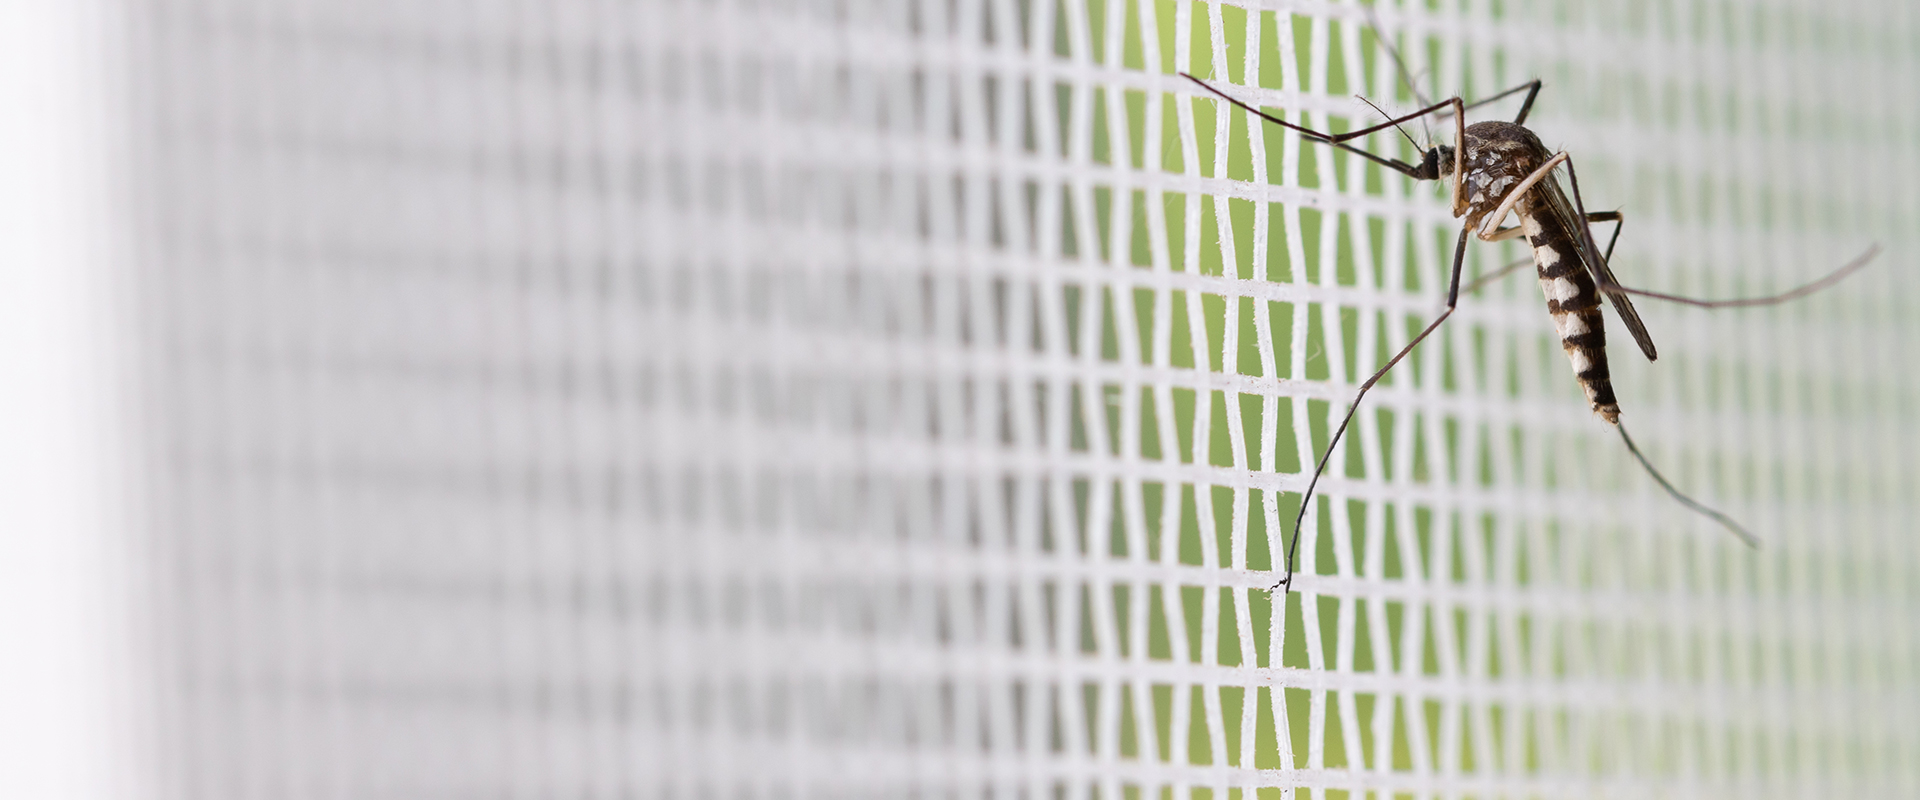 a mosquito on a window screen